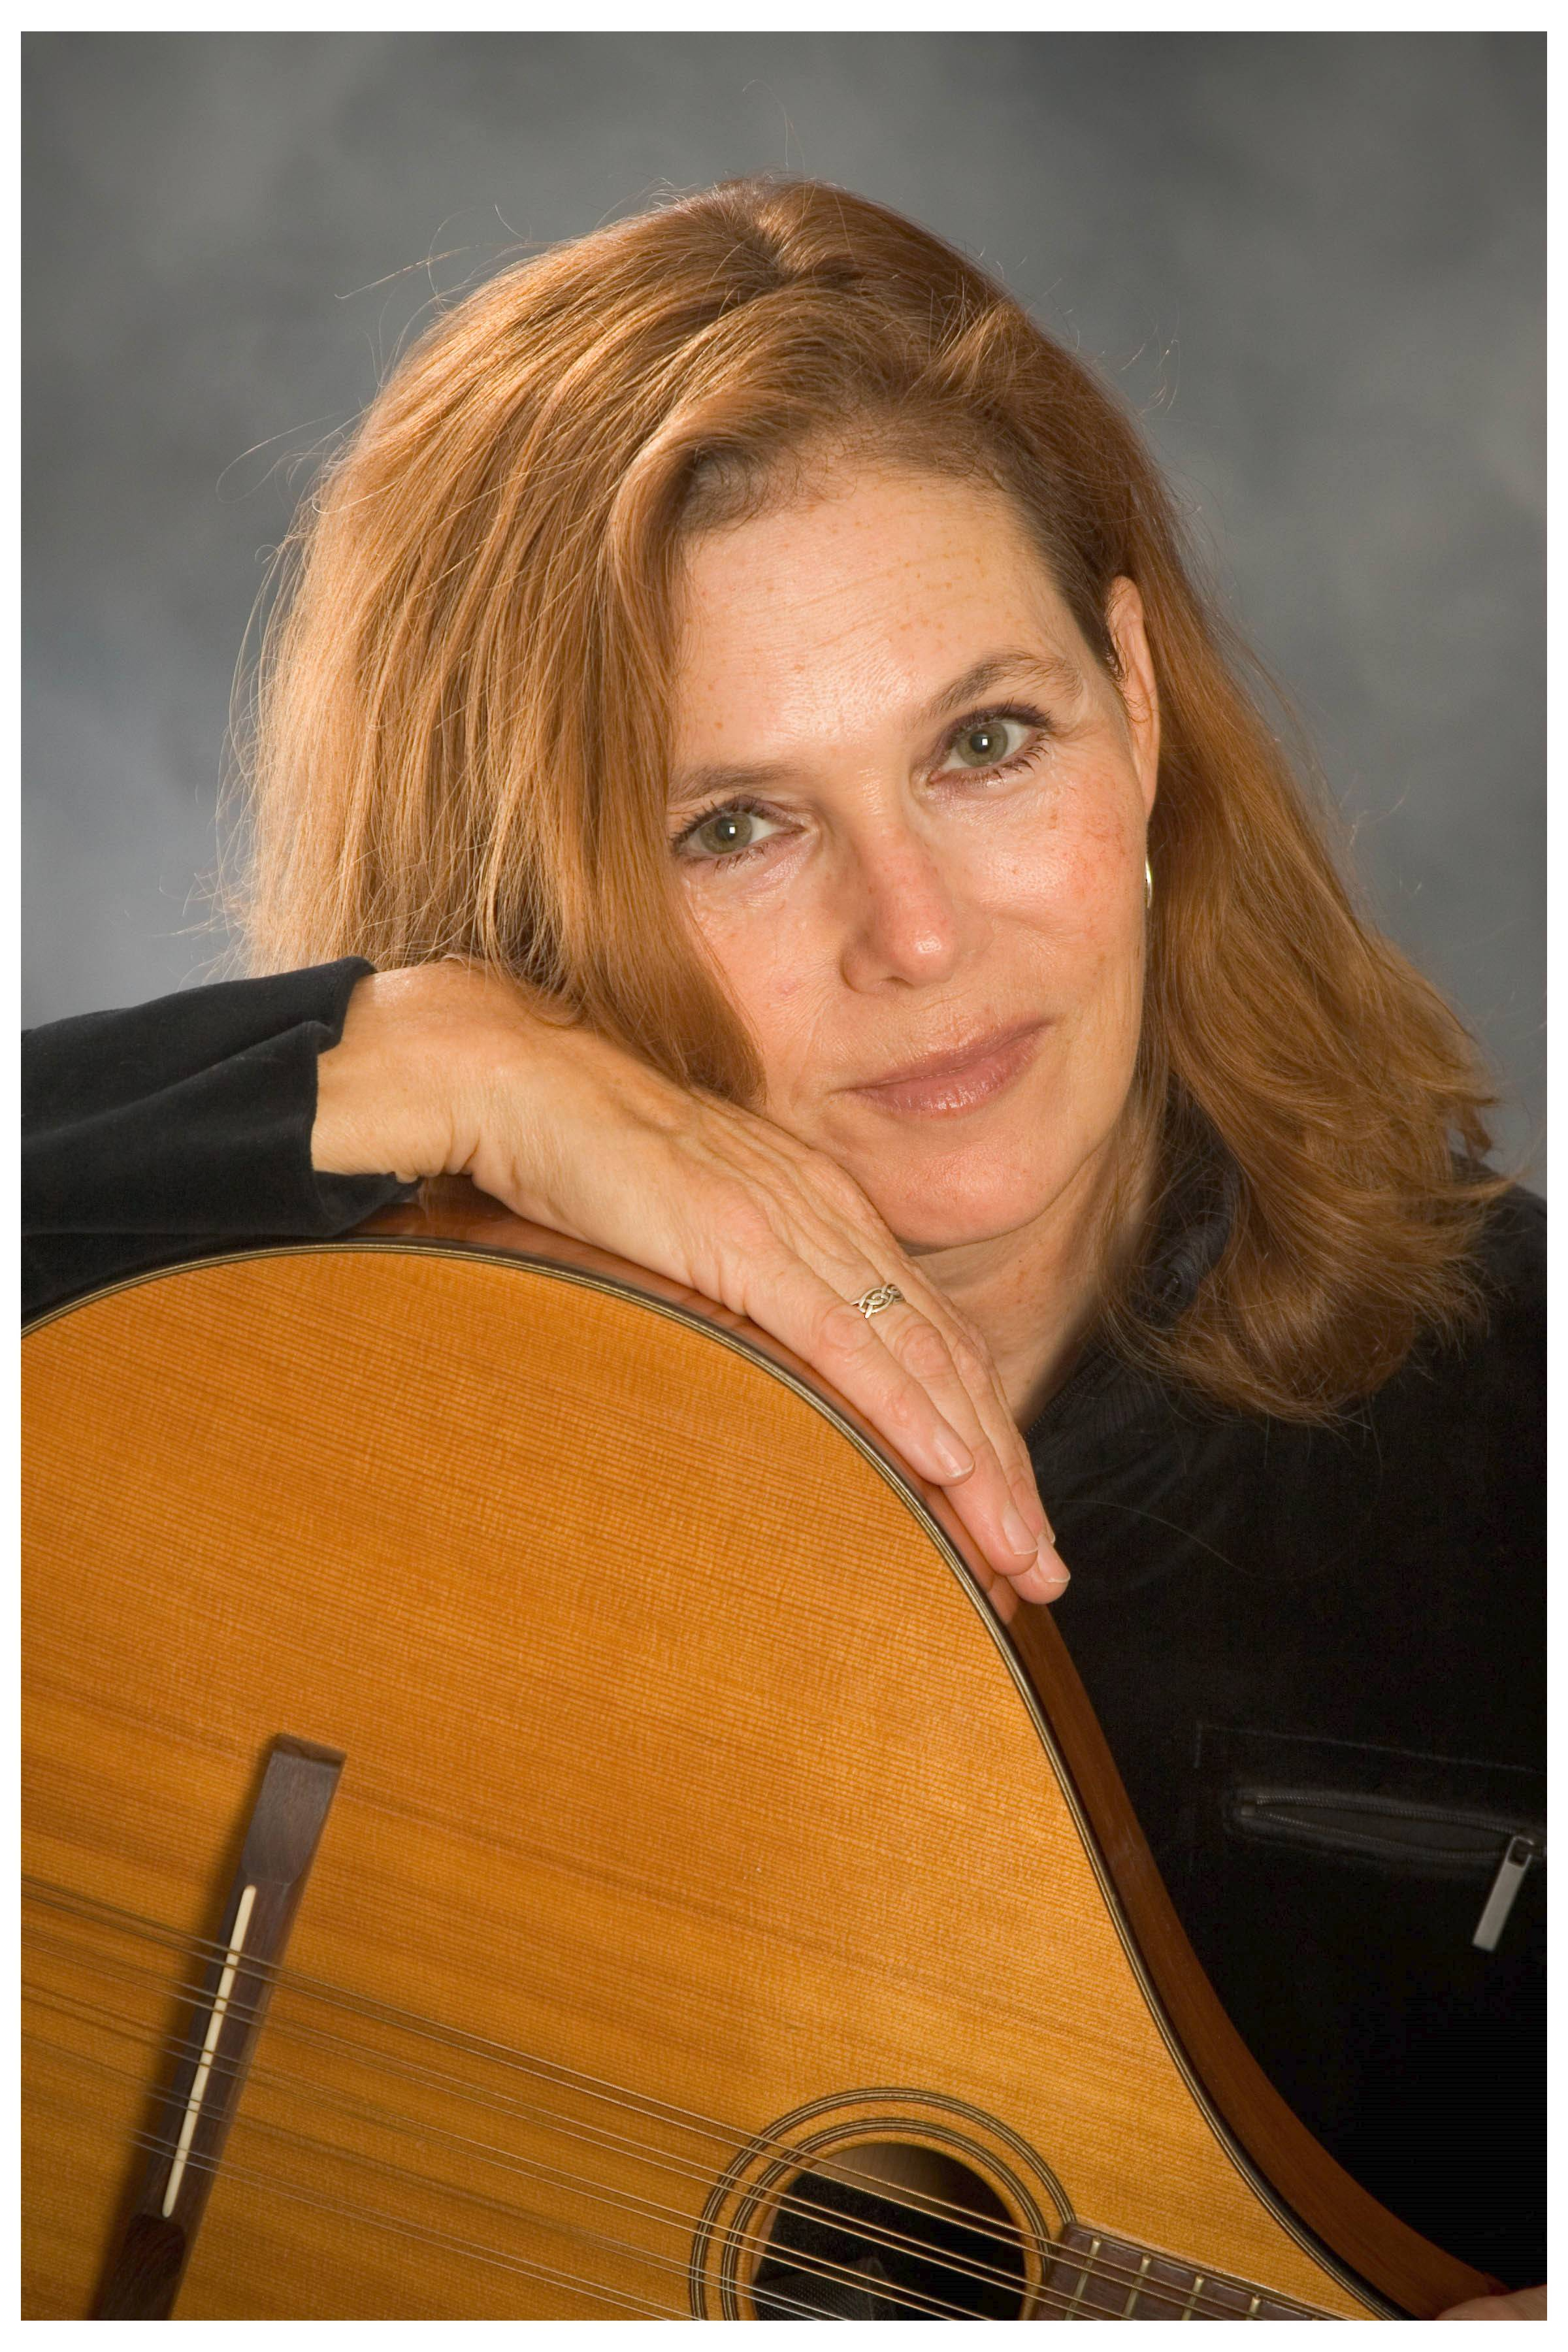 Courtesy of Kitty DonohoeMichigan-based singer and songwriter Kitty Donohoe sings and play the piano, guitar and cittern in a concert at 7:30 p.m. Friday, May 9, at Trinity Lutheran Church, 675 Algonquin Road, Des Plaines.